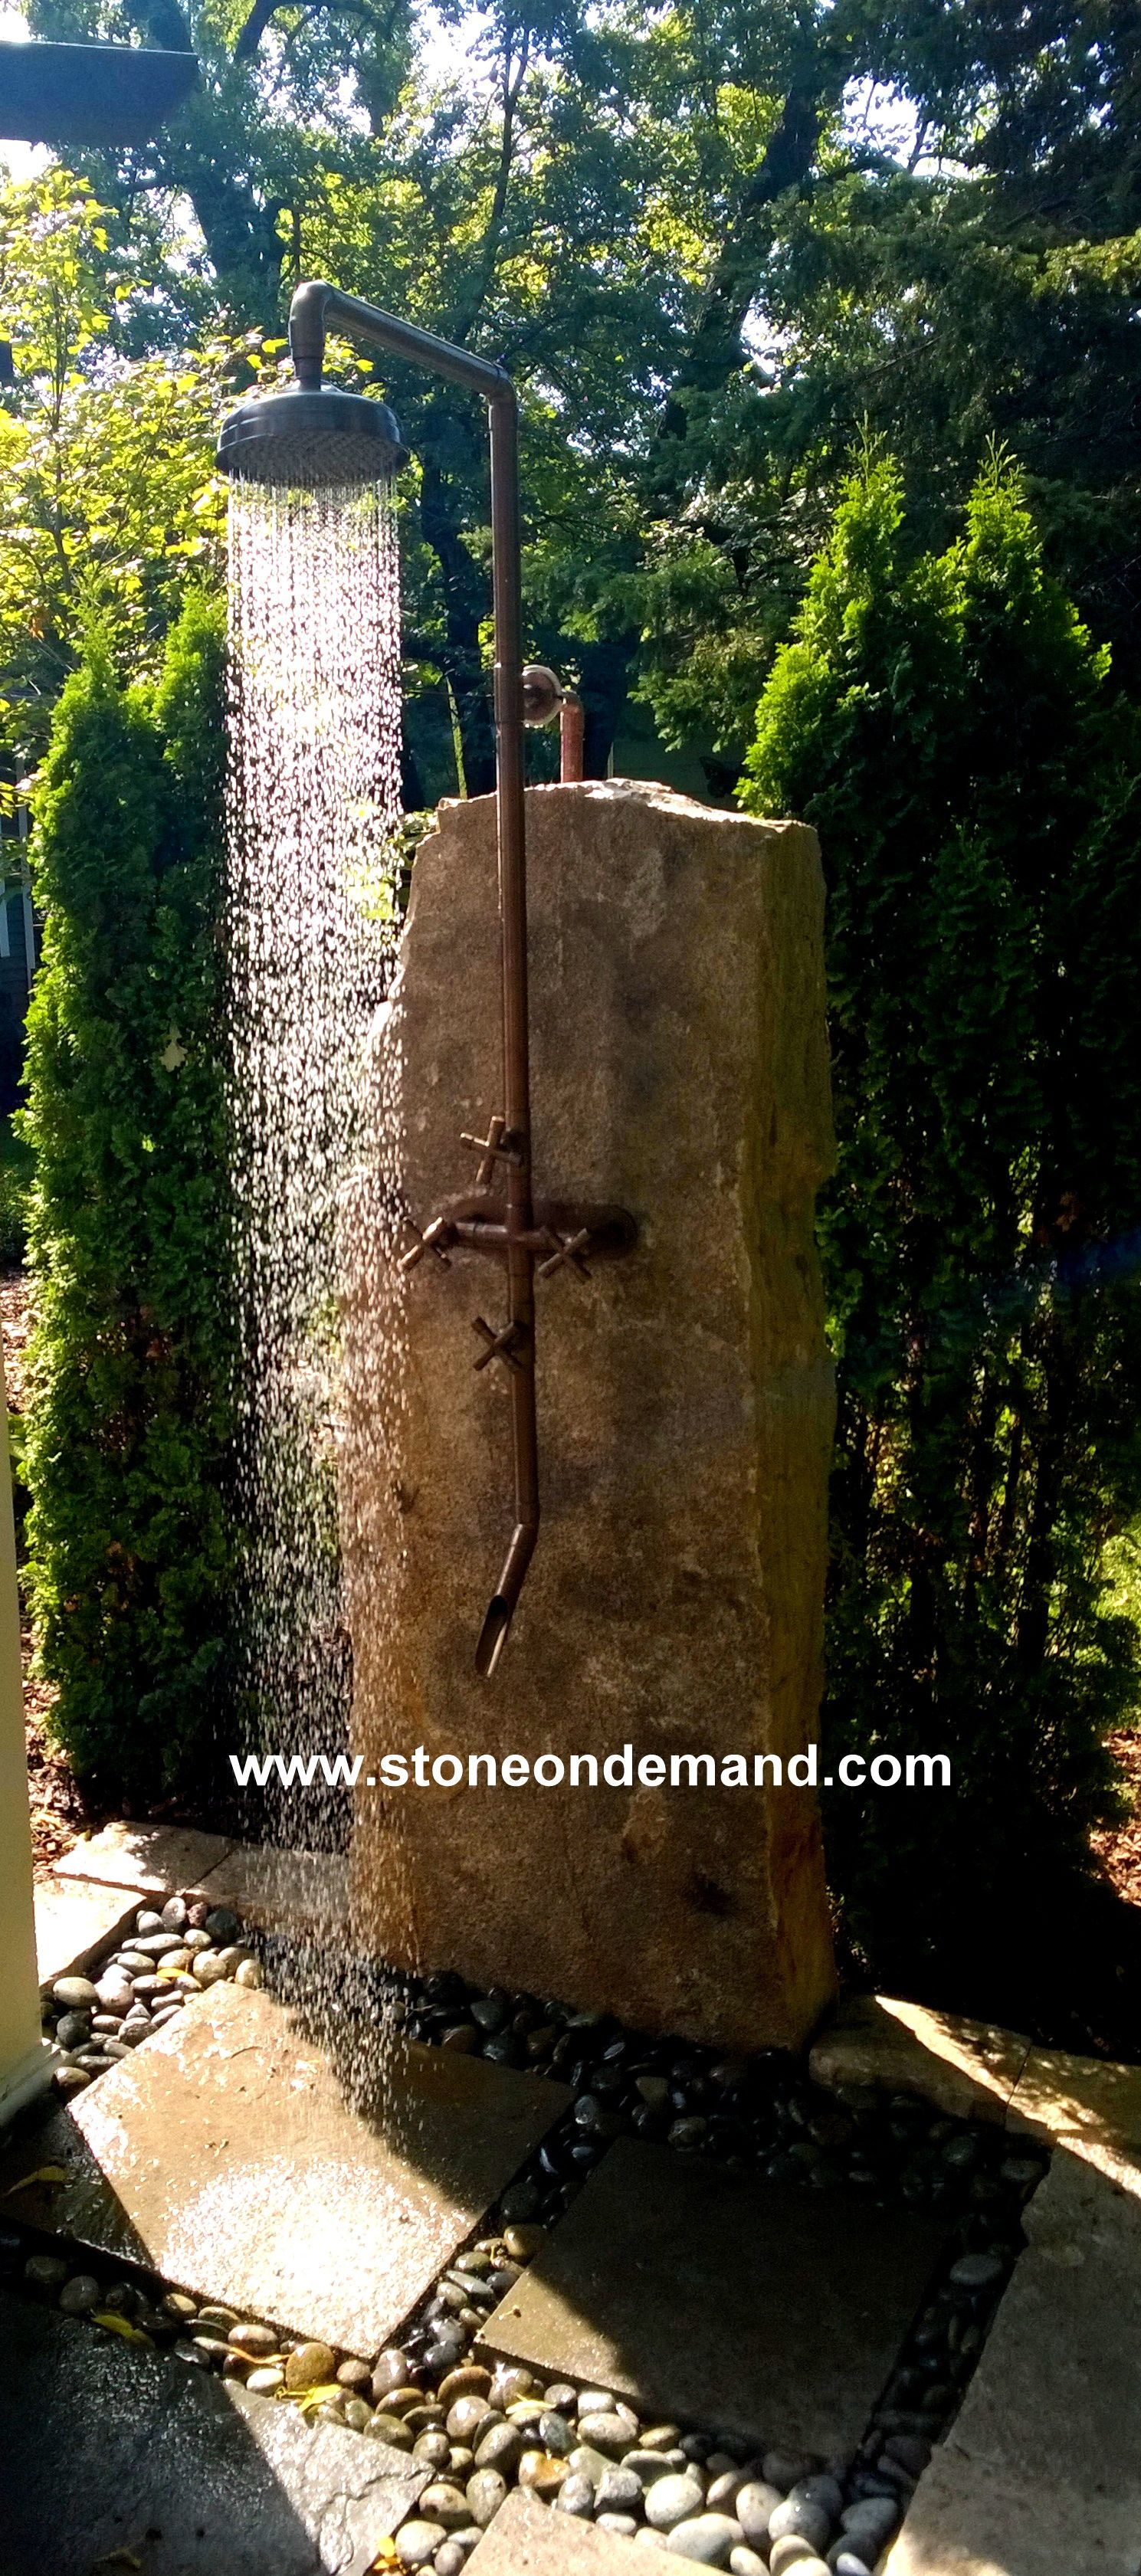 Gartendusche Rustikal Parade Of Homes Featured Our Outdoor Shower Außendusche